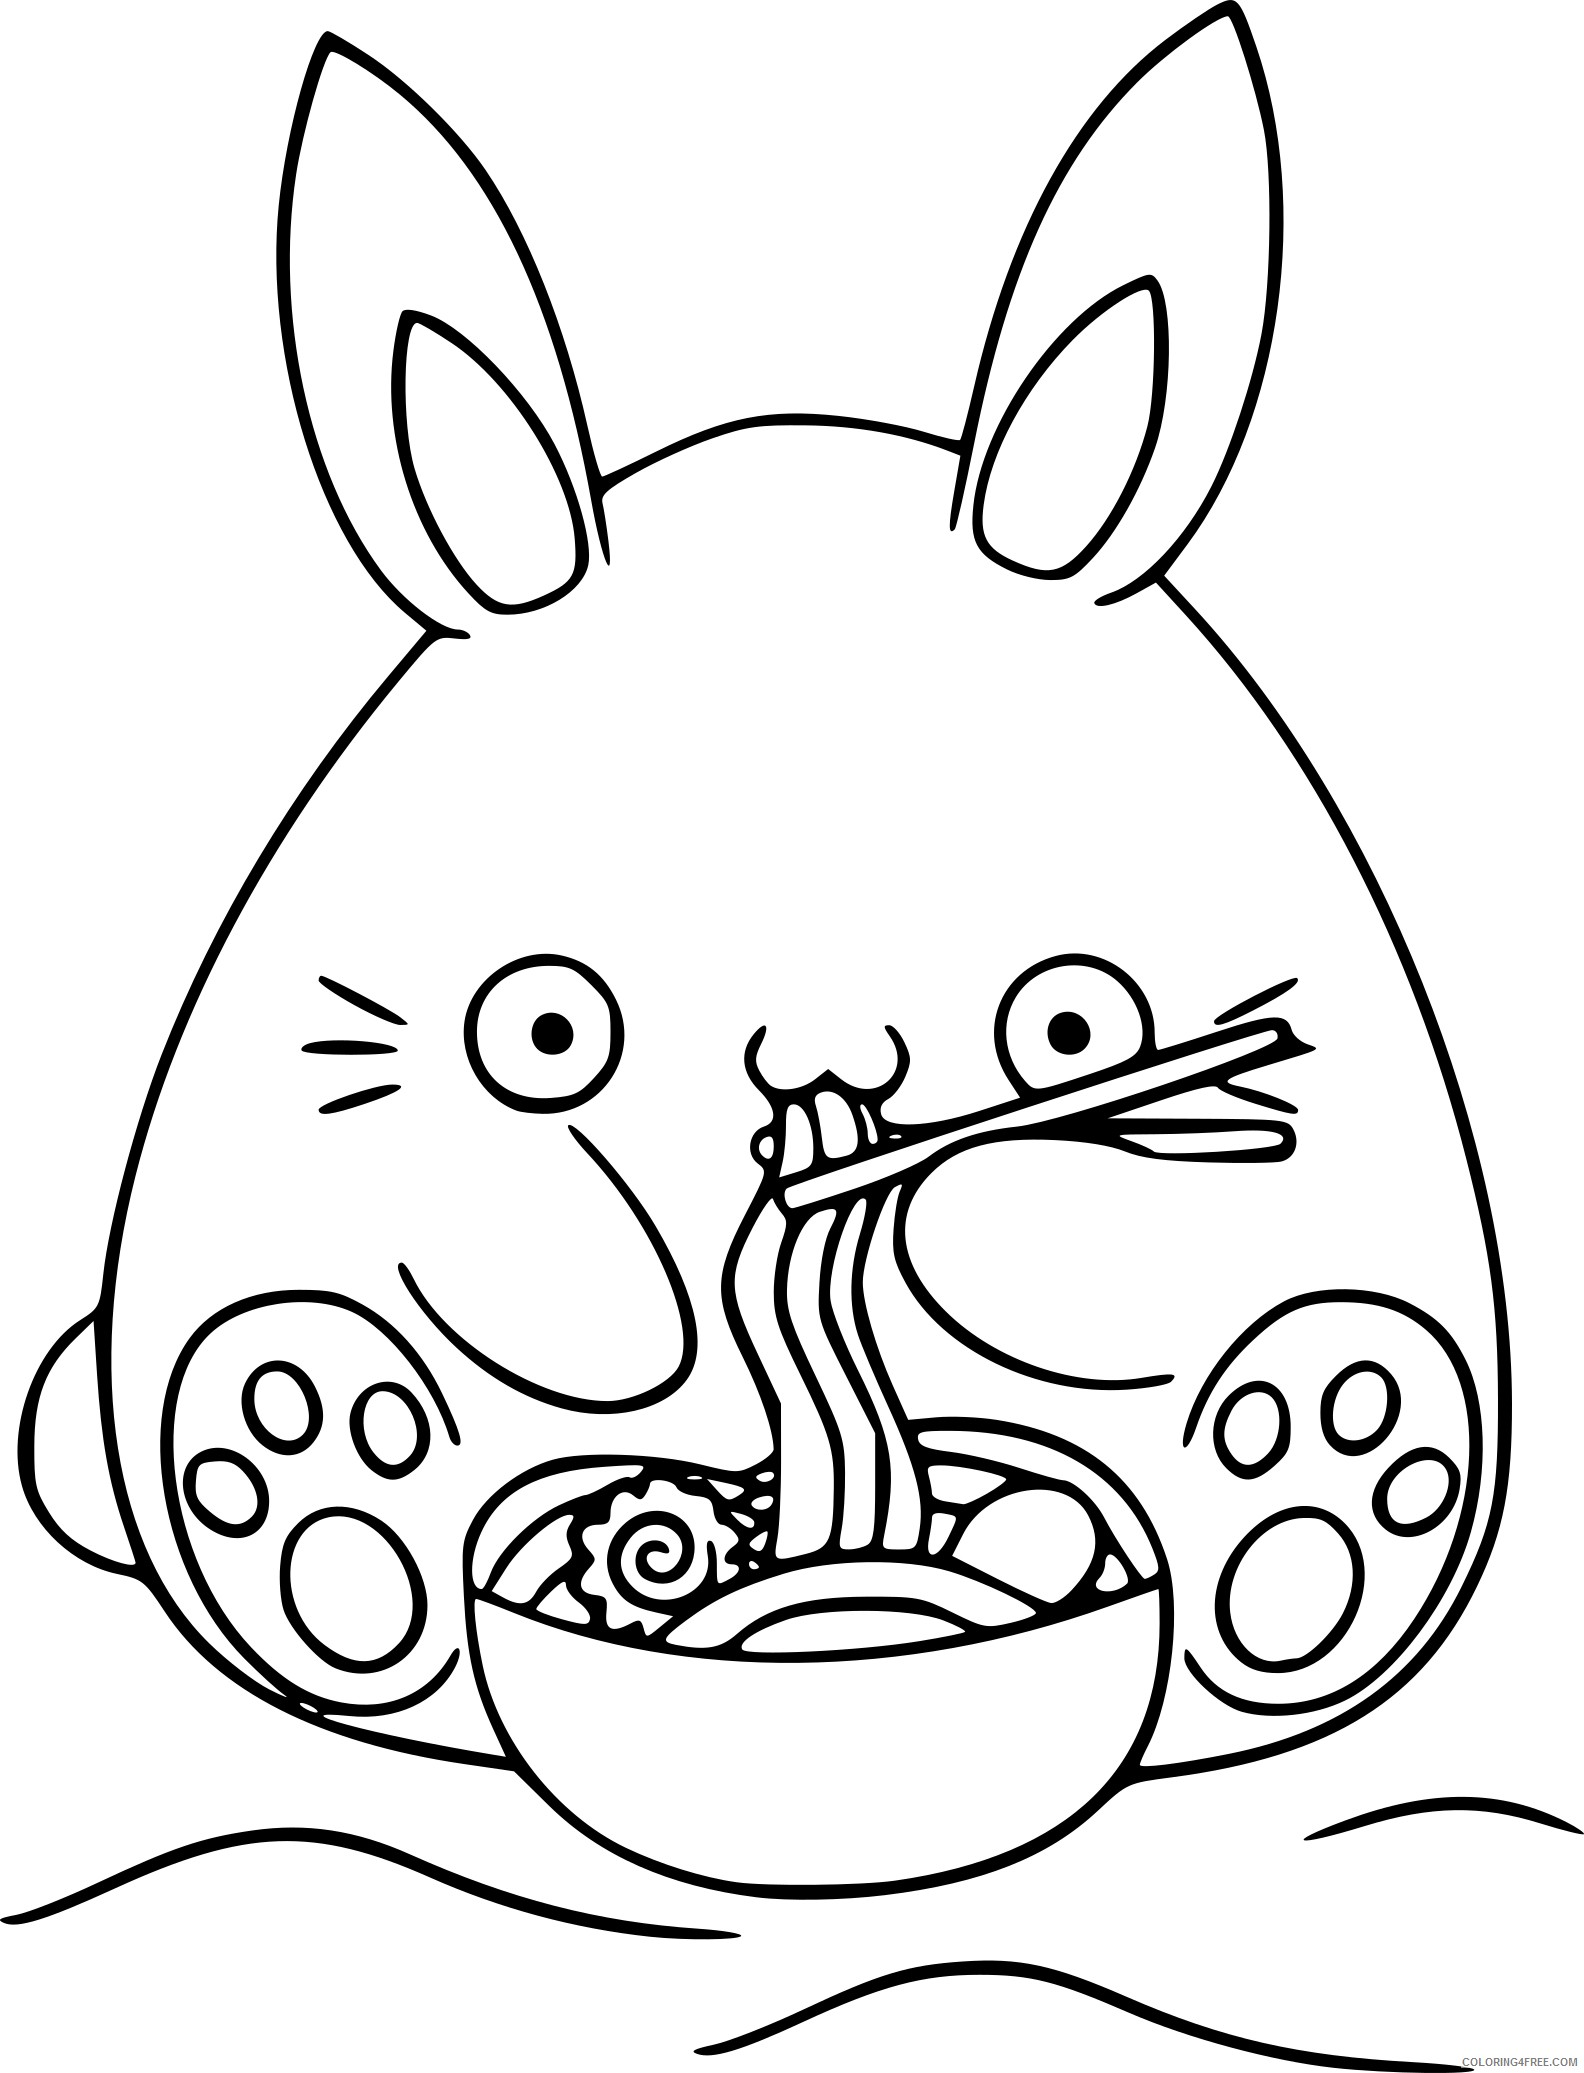 Image result for kawaii coloring pages | Cute coloring pages ... | 2073x1584